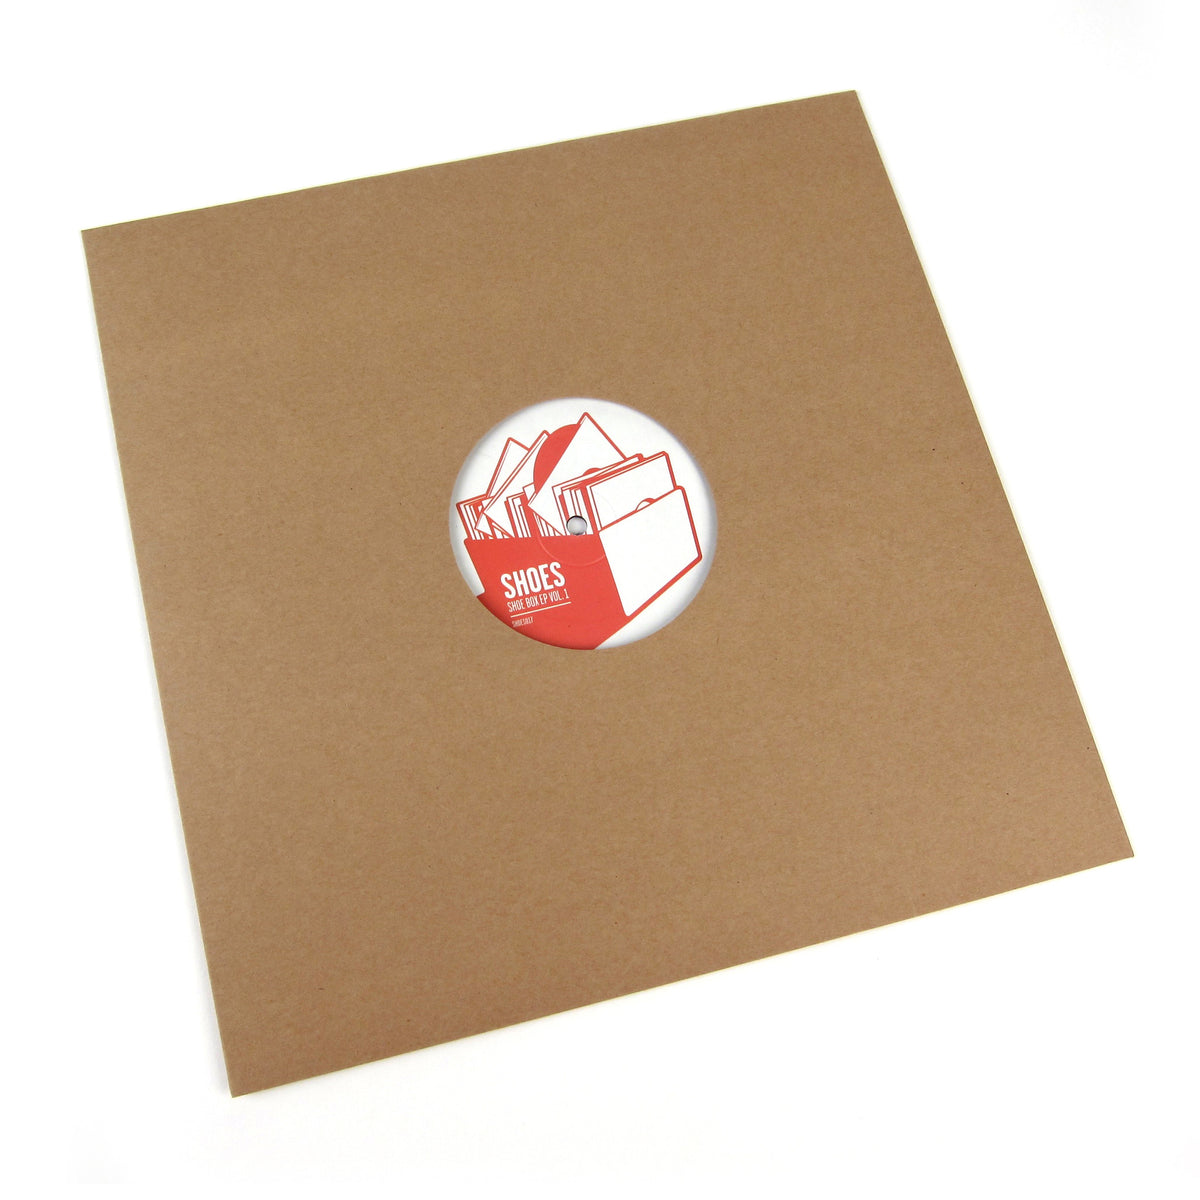 Shoes: Shoe Box EP Vol.1 (Kraftwerk, Jakki) Vinyl 12""